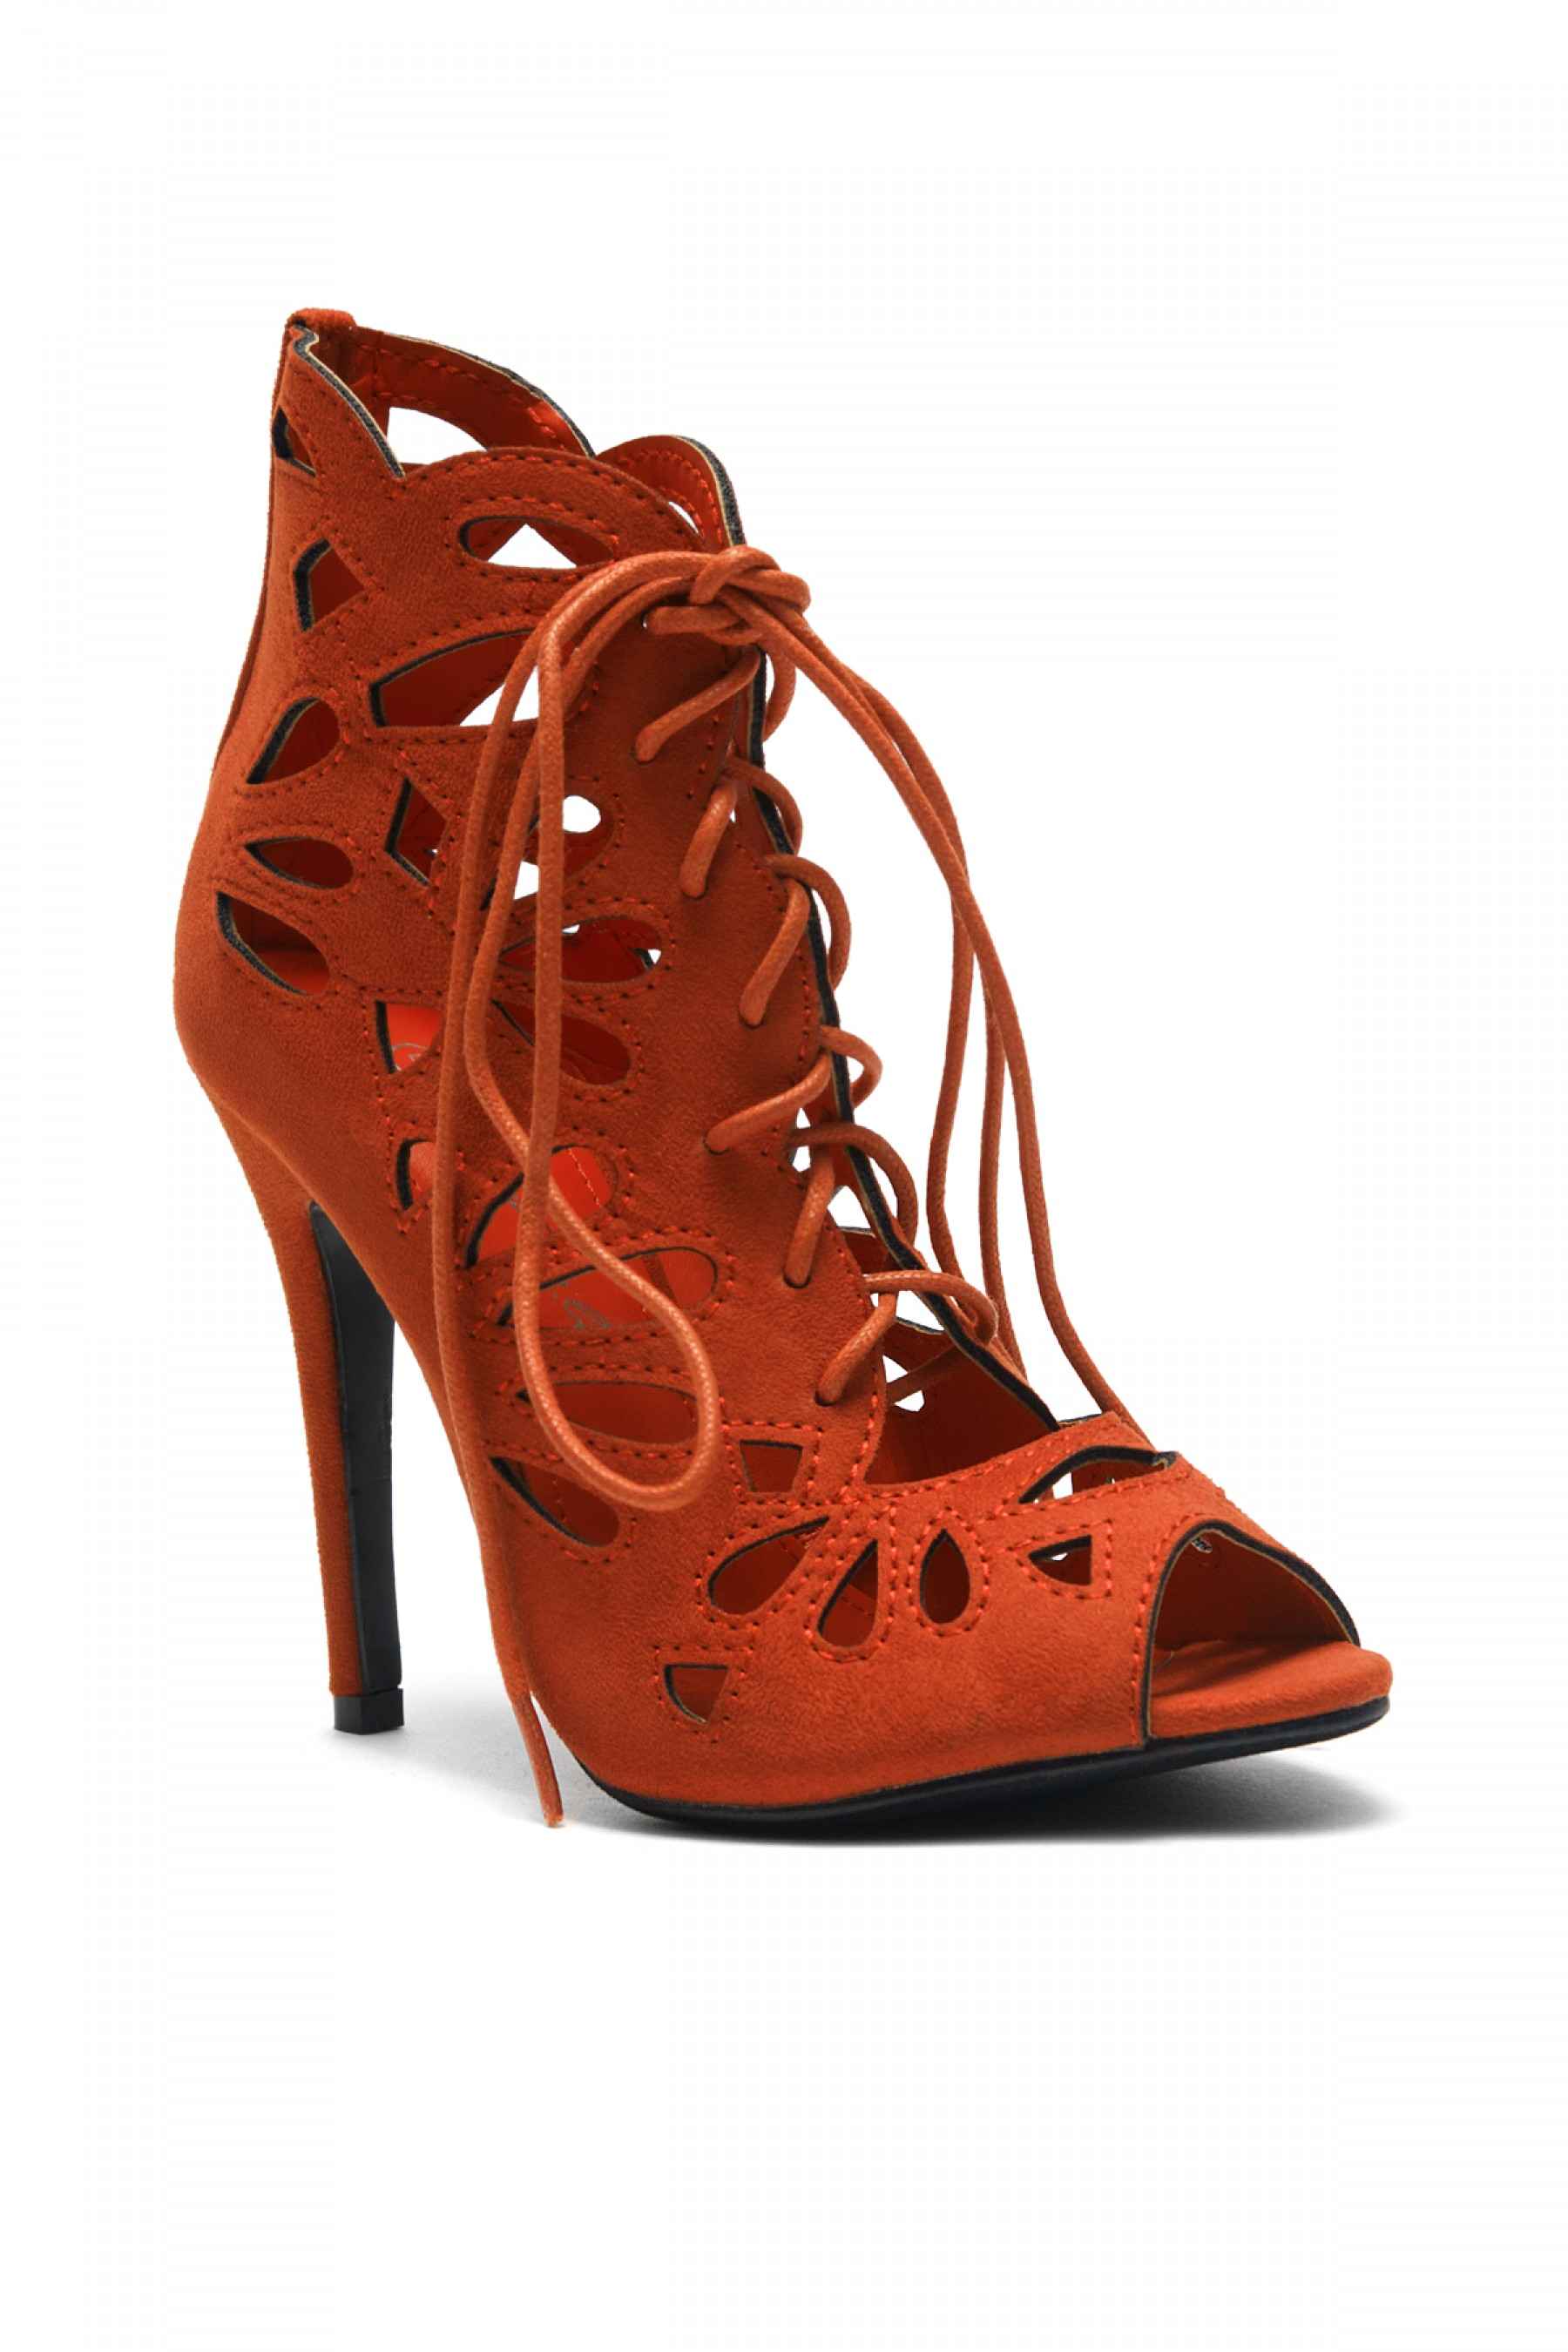 Women's Zenaviaa Rust Stiletto heels